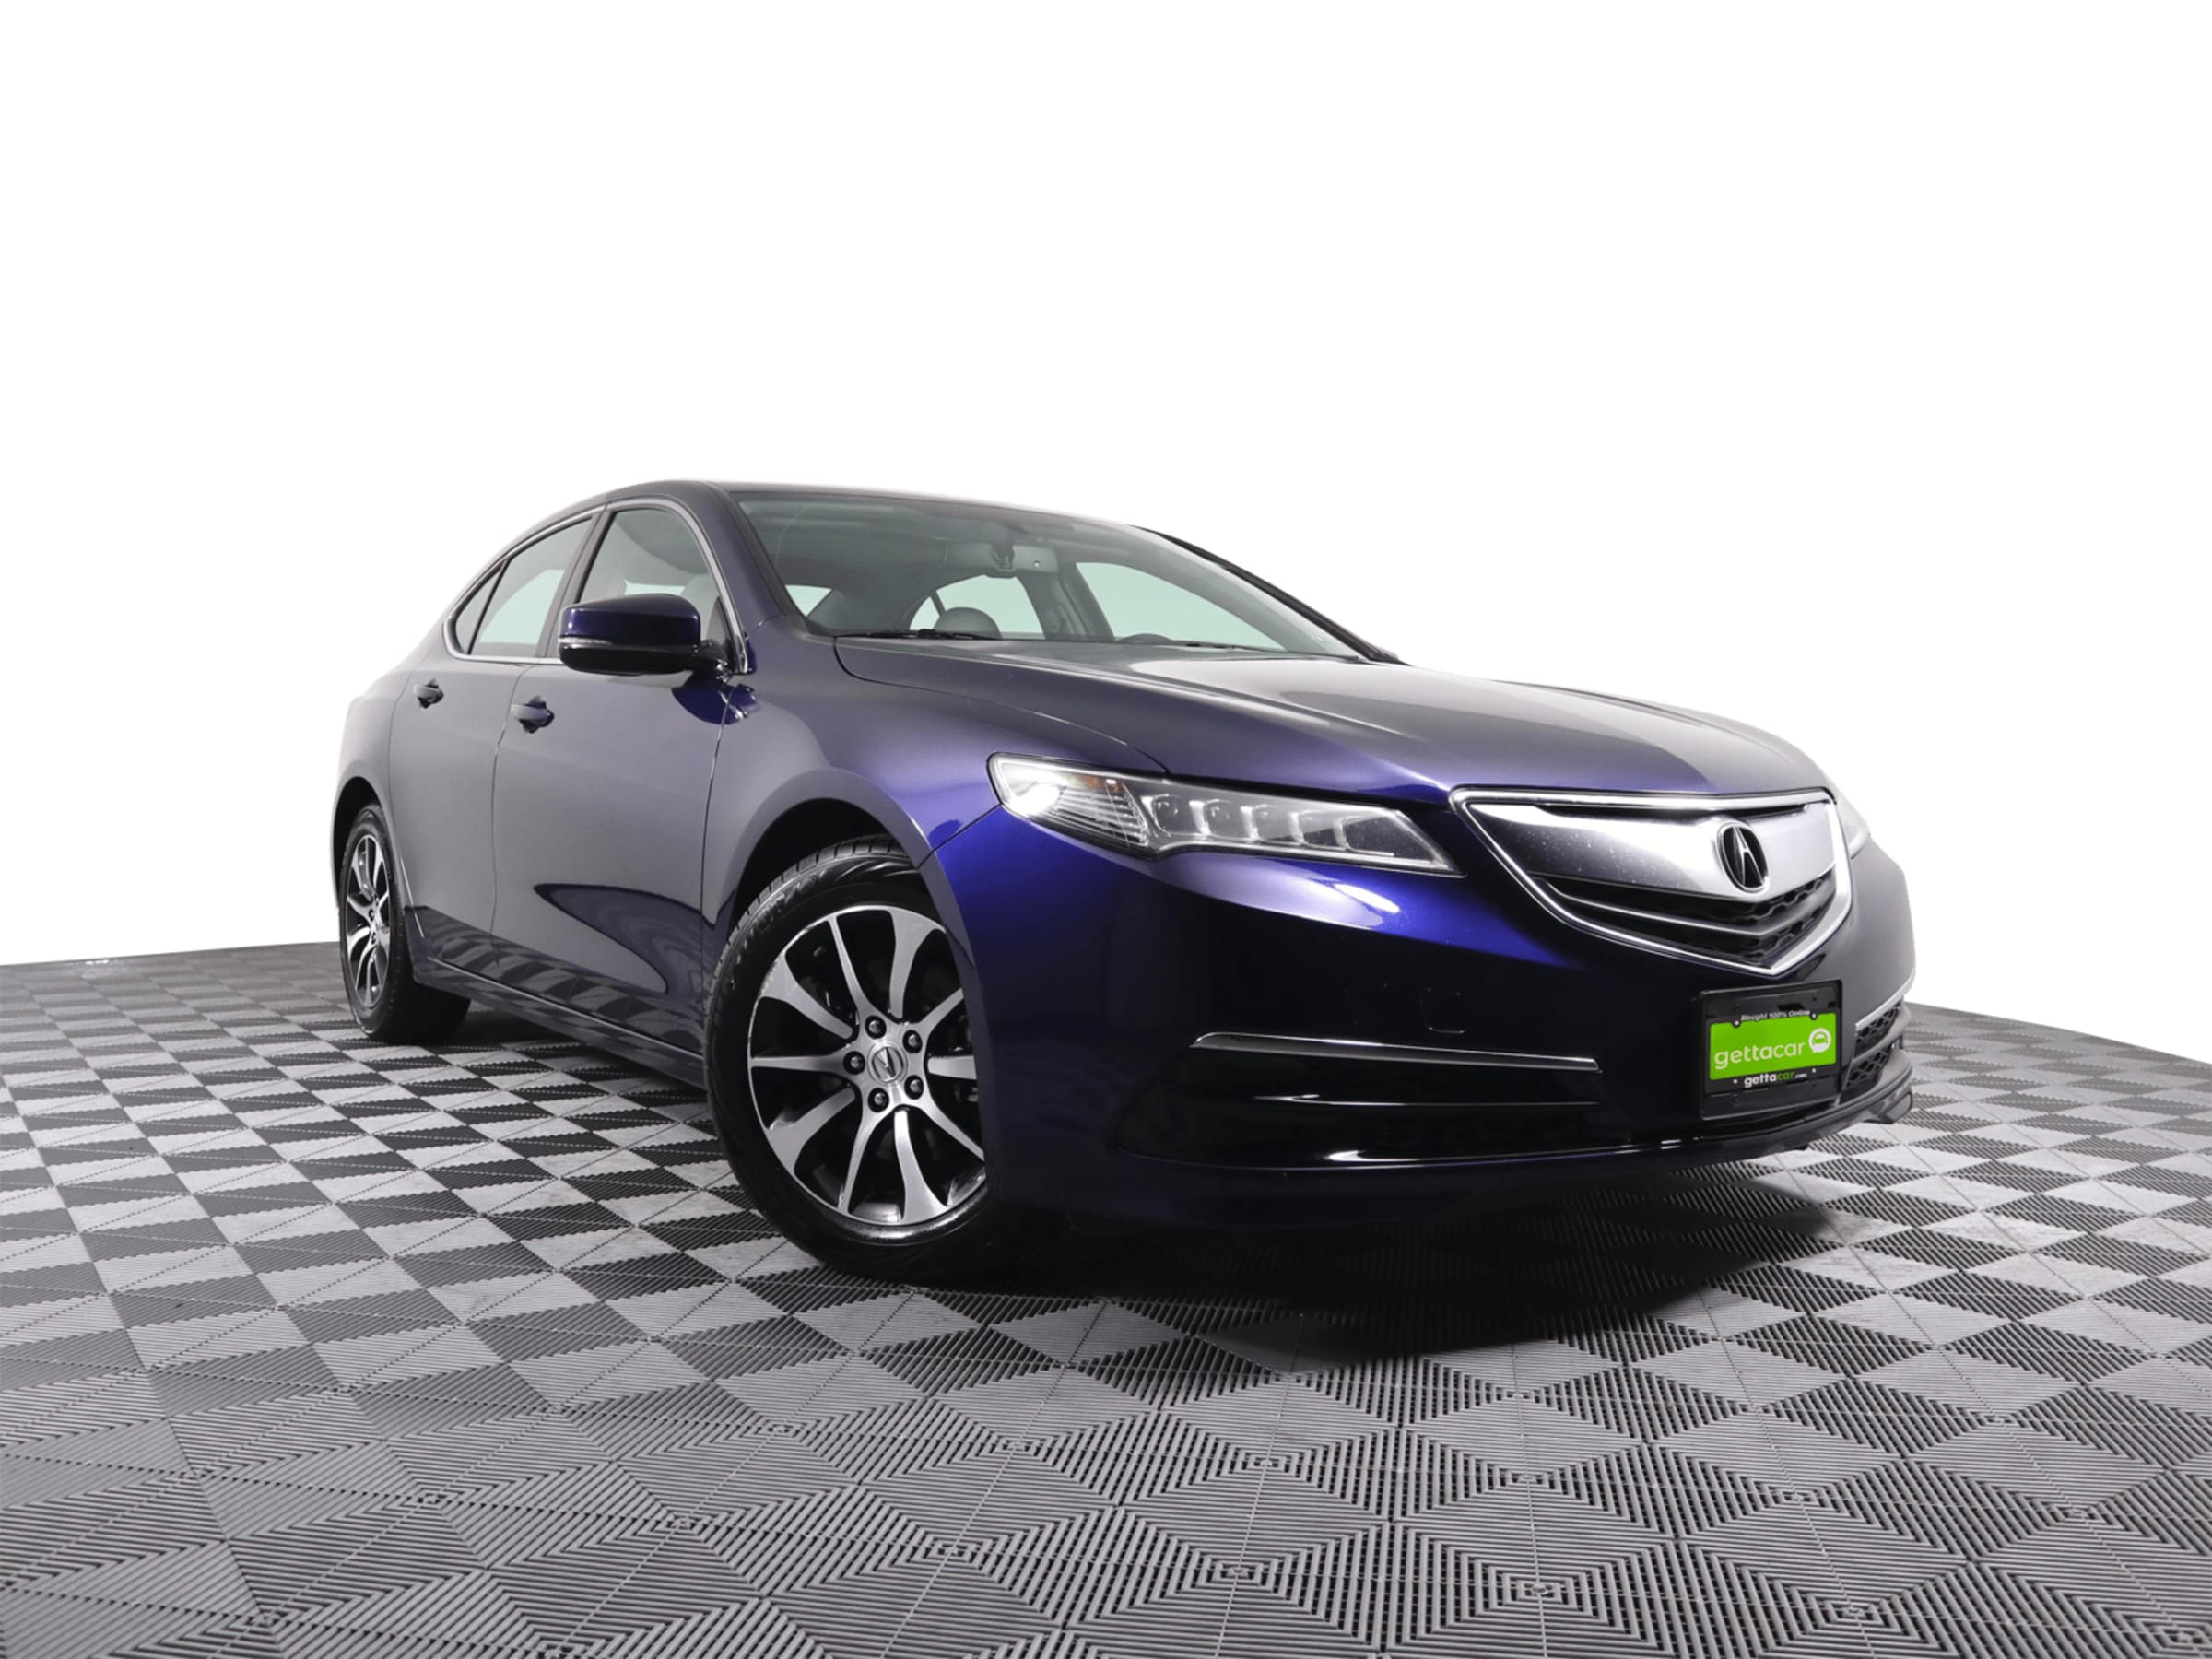 2016 Acura TLX null